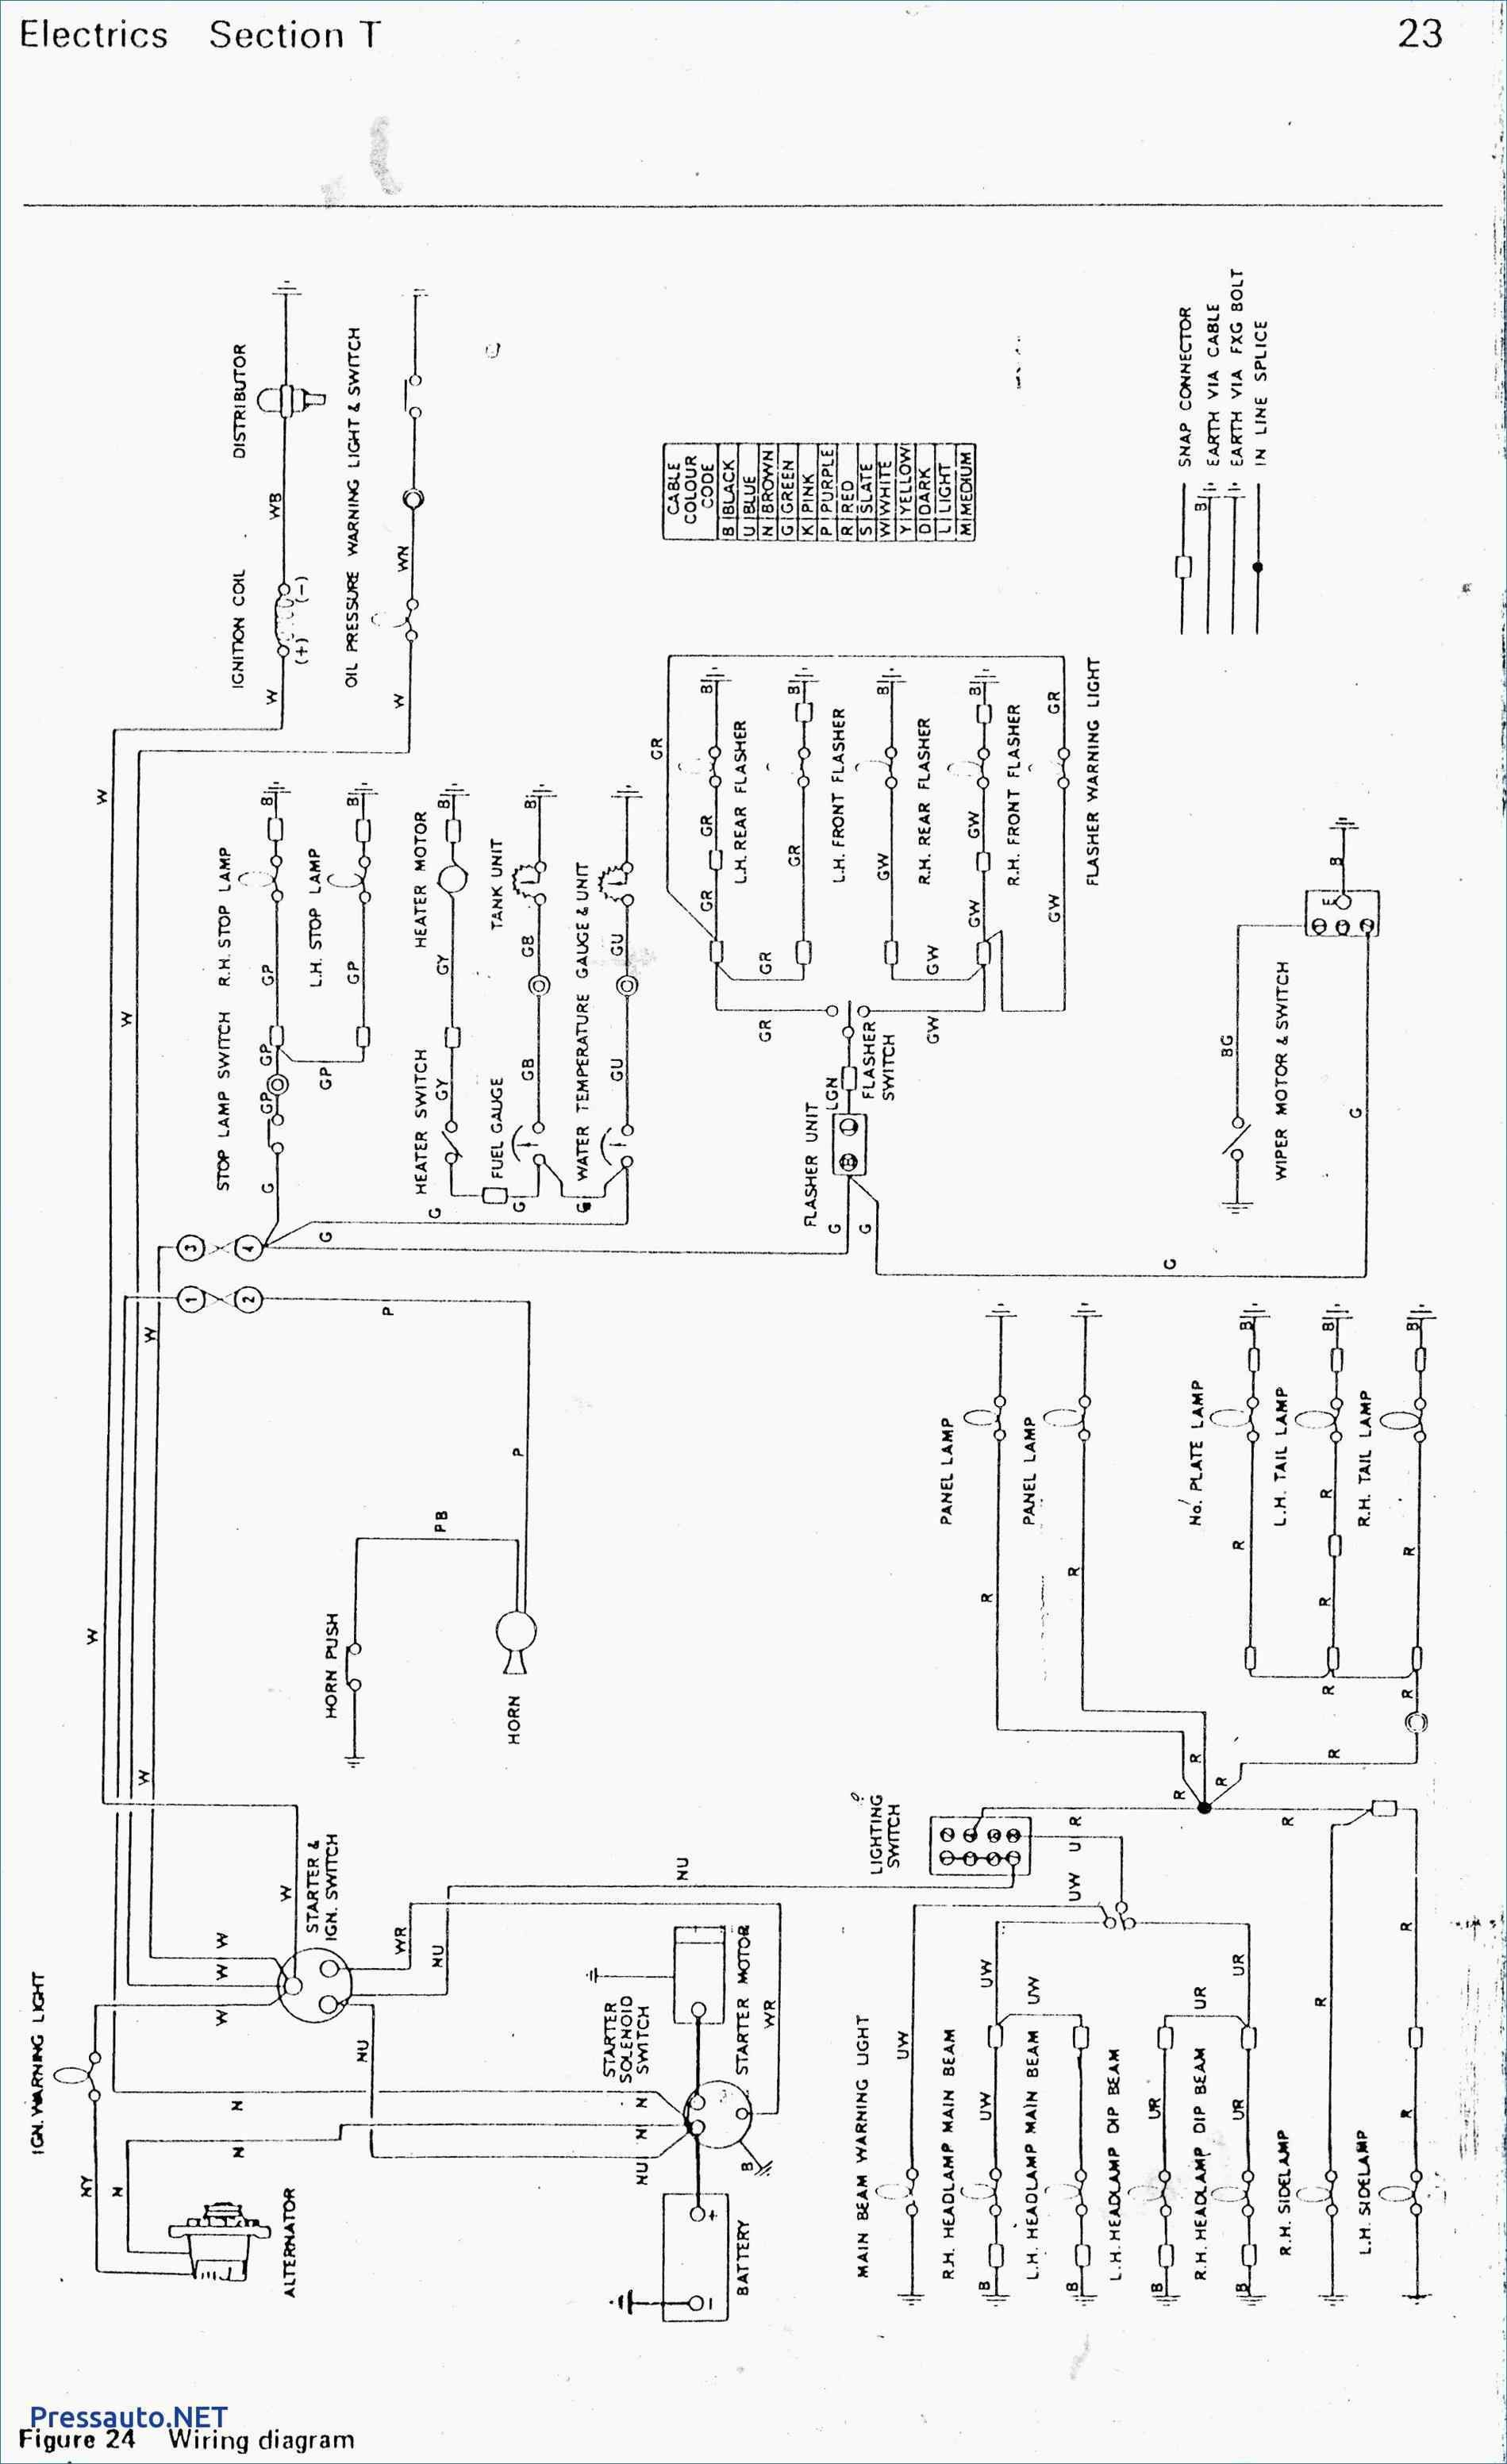 yale hoist wiring diagram Download-wiring yale schematic fork lift glp050rc wire center u2022 rh 66 42 71 199 Basic Electrical 9-r